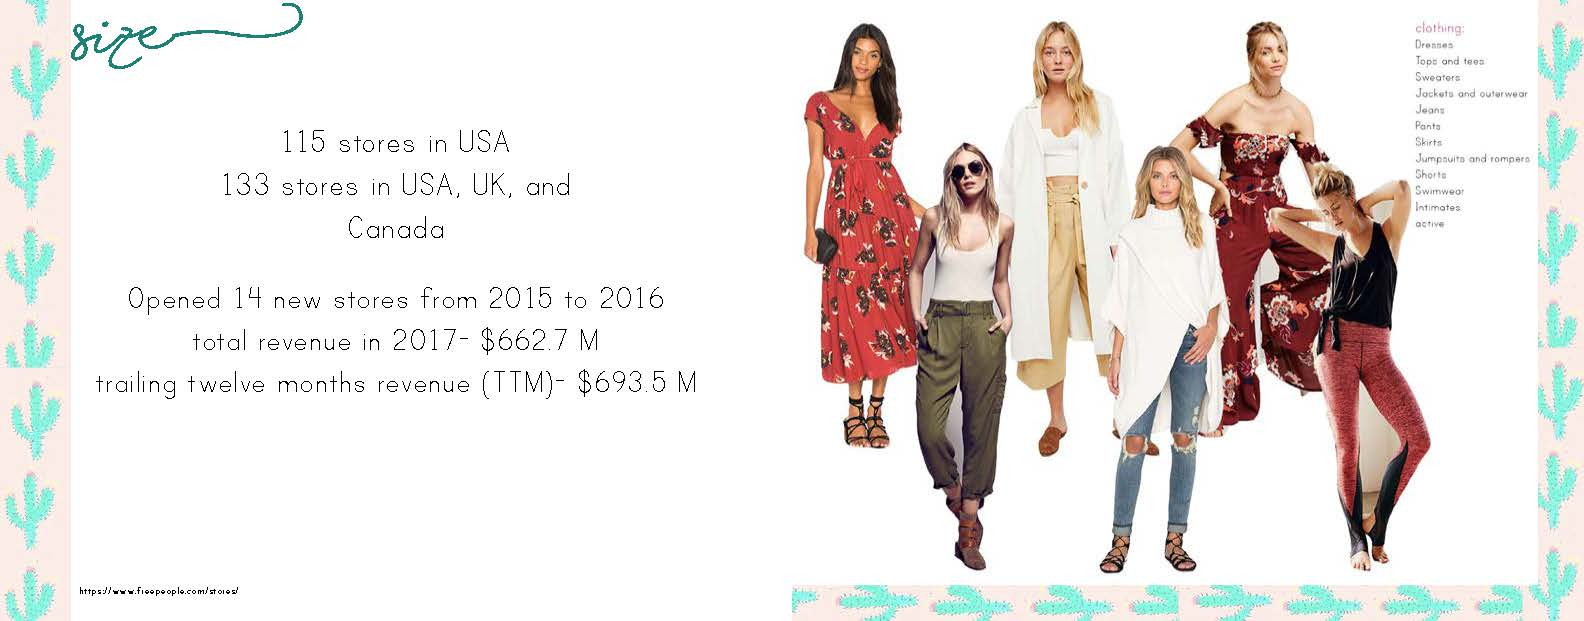 FREE PEOPLE BUYING PROJECT_Page_08.jpg